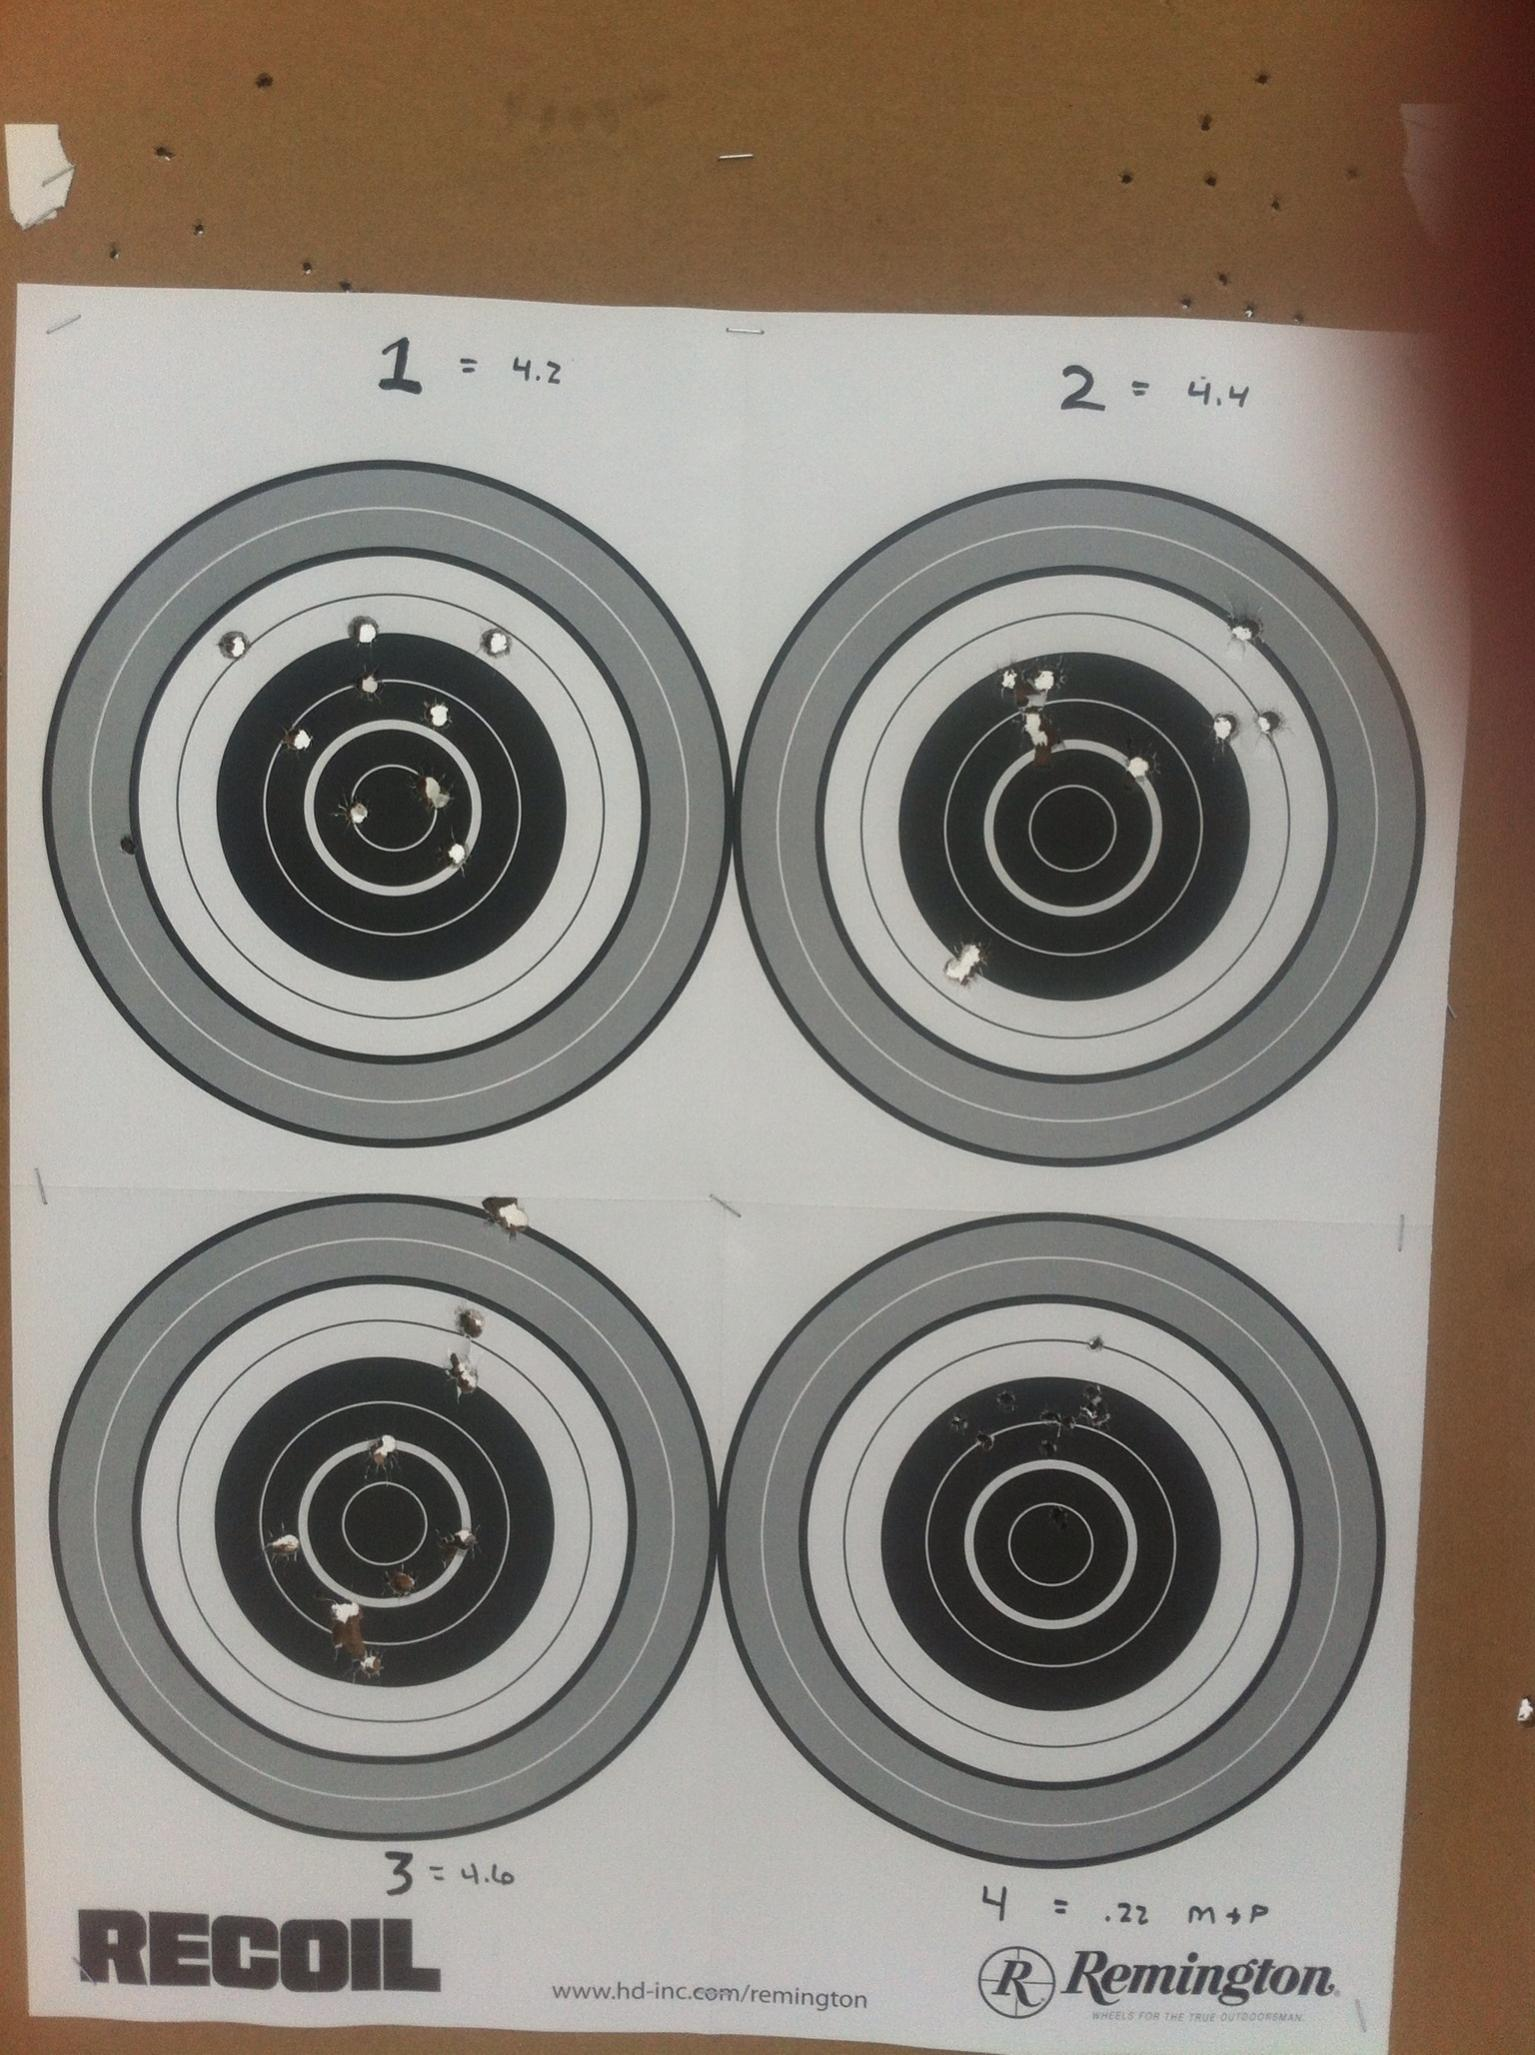 Shooting today/tuning hand loads-image.jpg